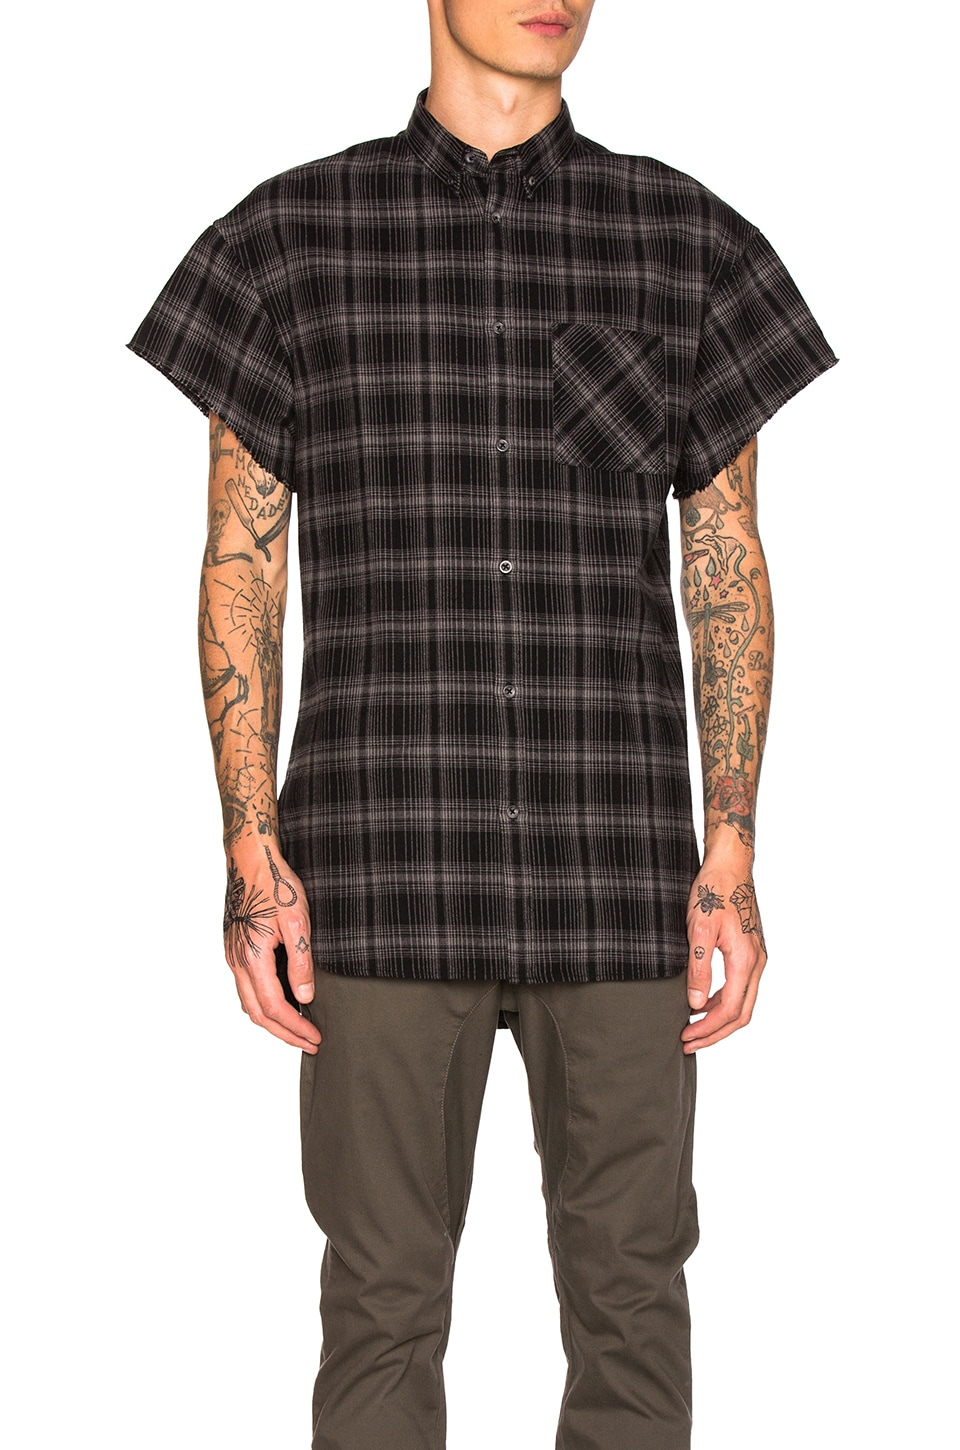 Rugger Cut Sleeve Shirt by Zanerobe